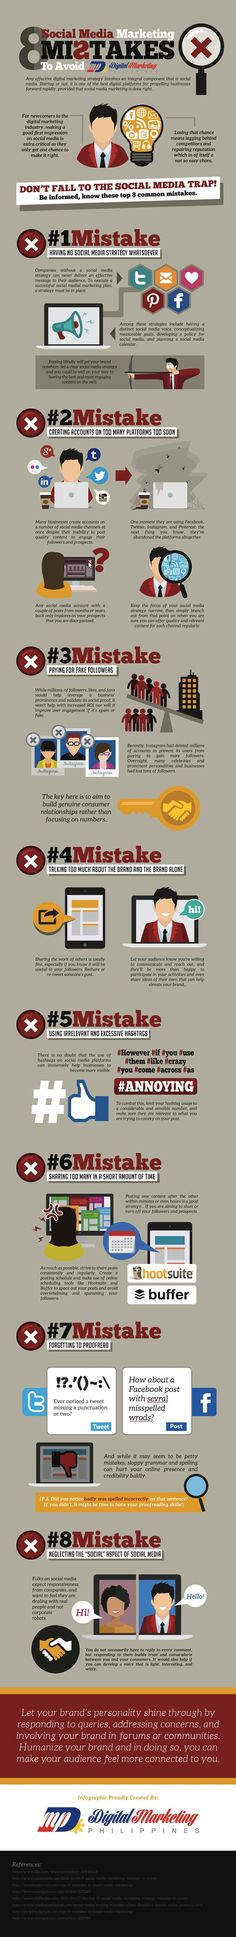 Social Media Mistakes! * Social Network Marketing with Jacs Henderson